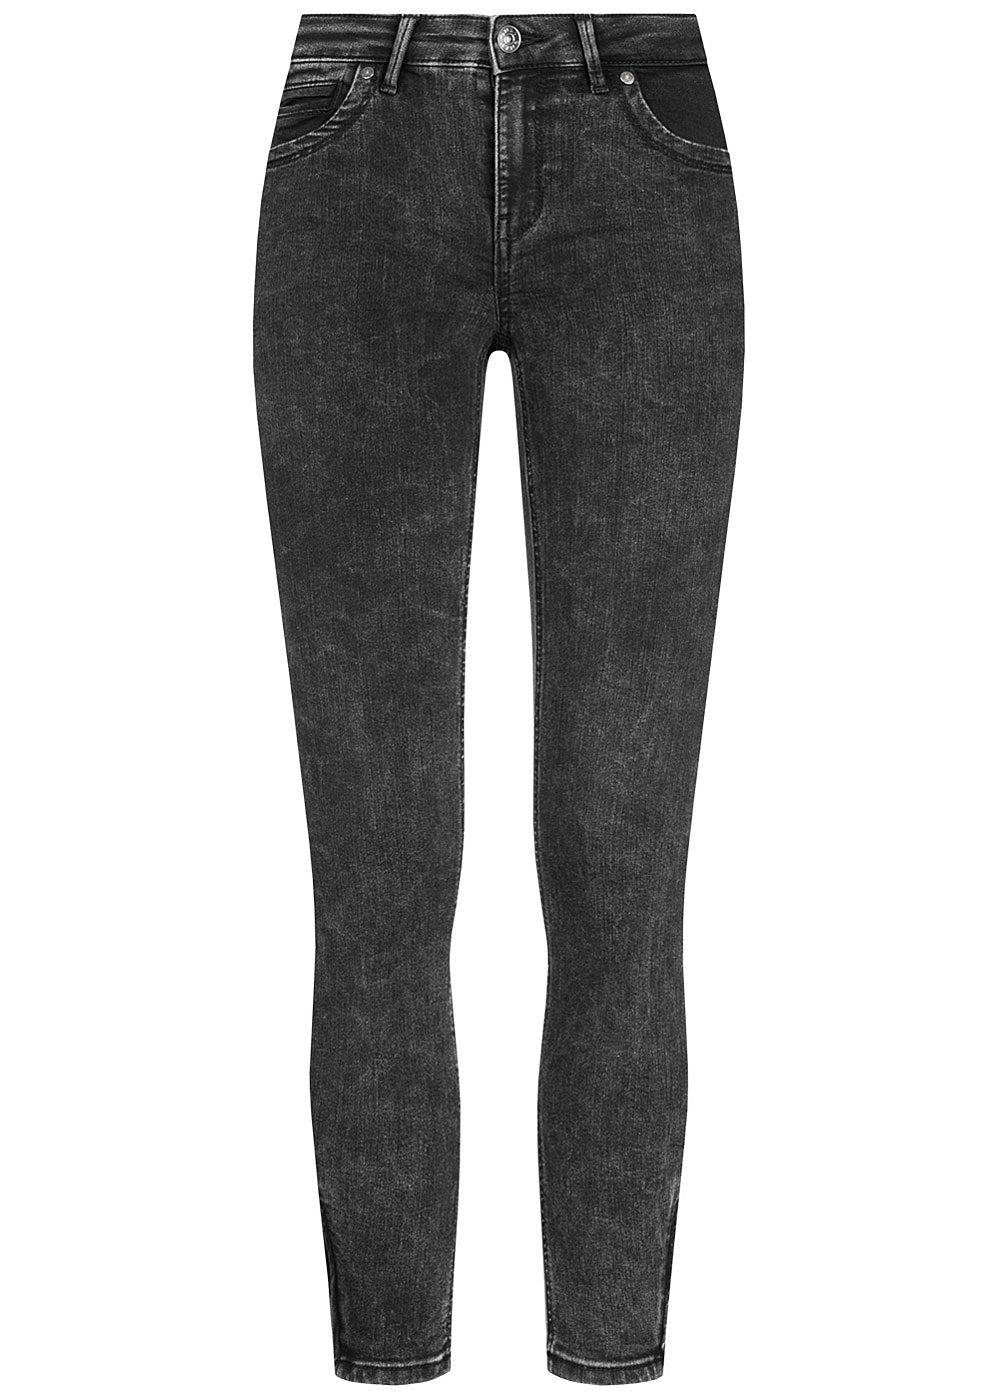 ONLY Damen Ankle Jeans Hose Regular Waist 5-Pockets washed schwarz denim - Art.-Nr.: 20084011